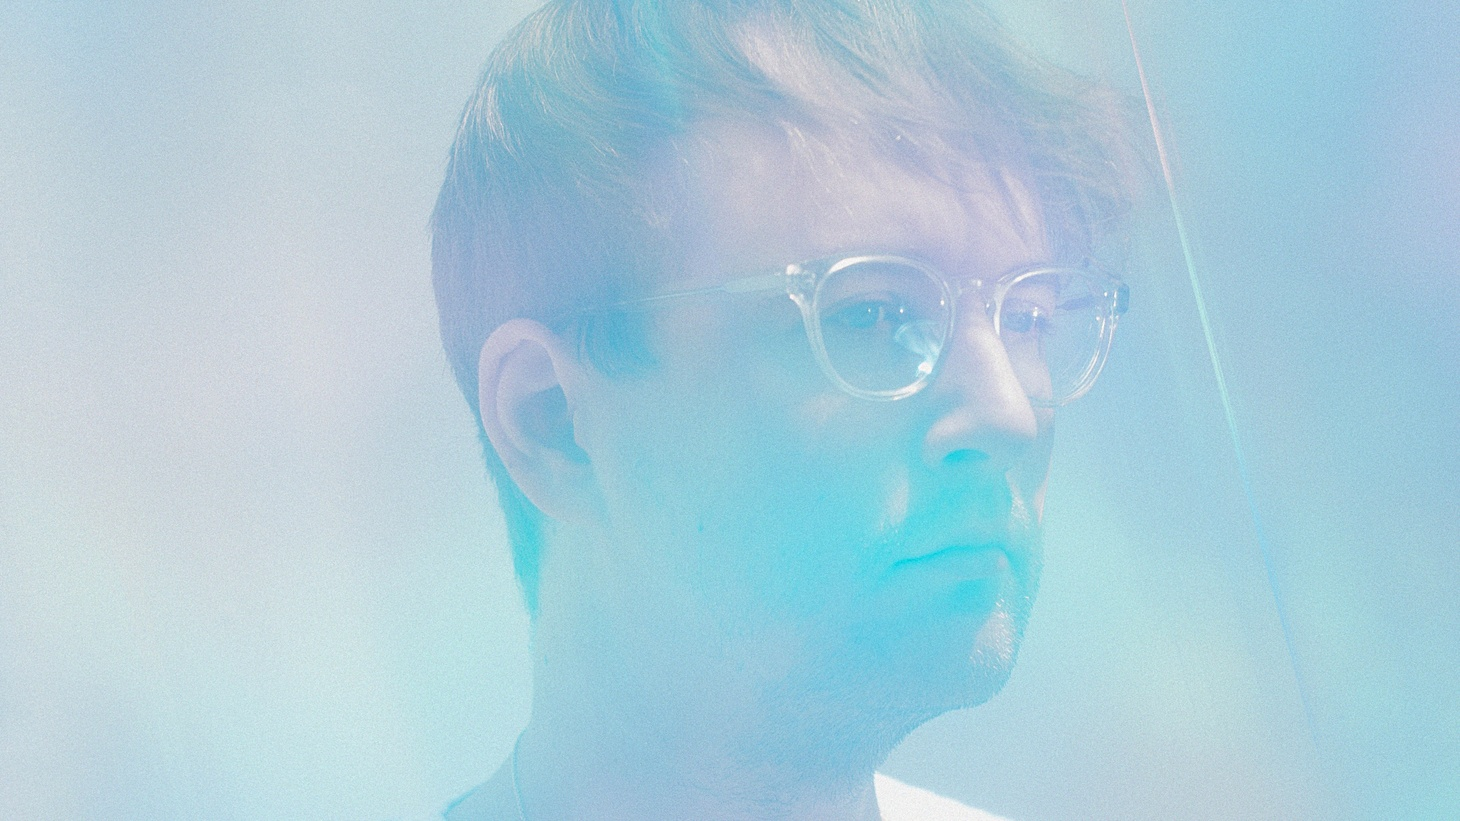 North Carolina-born artist Travis Stewart, otherwise known as Machinedrum, is an veteran of the electronic music scene, with over 10 years of experience.